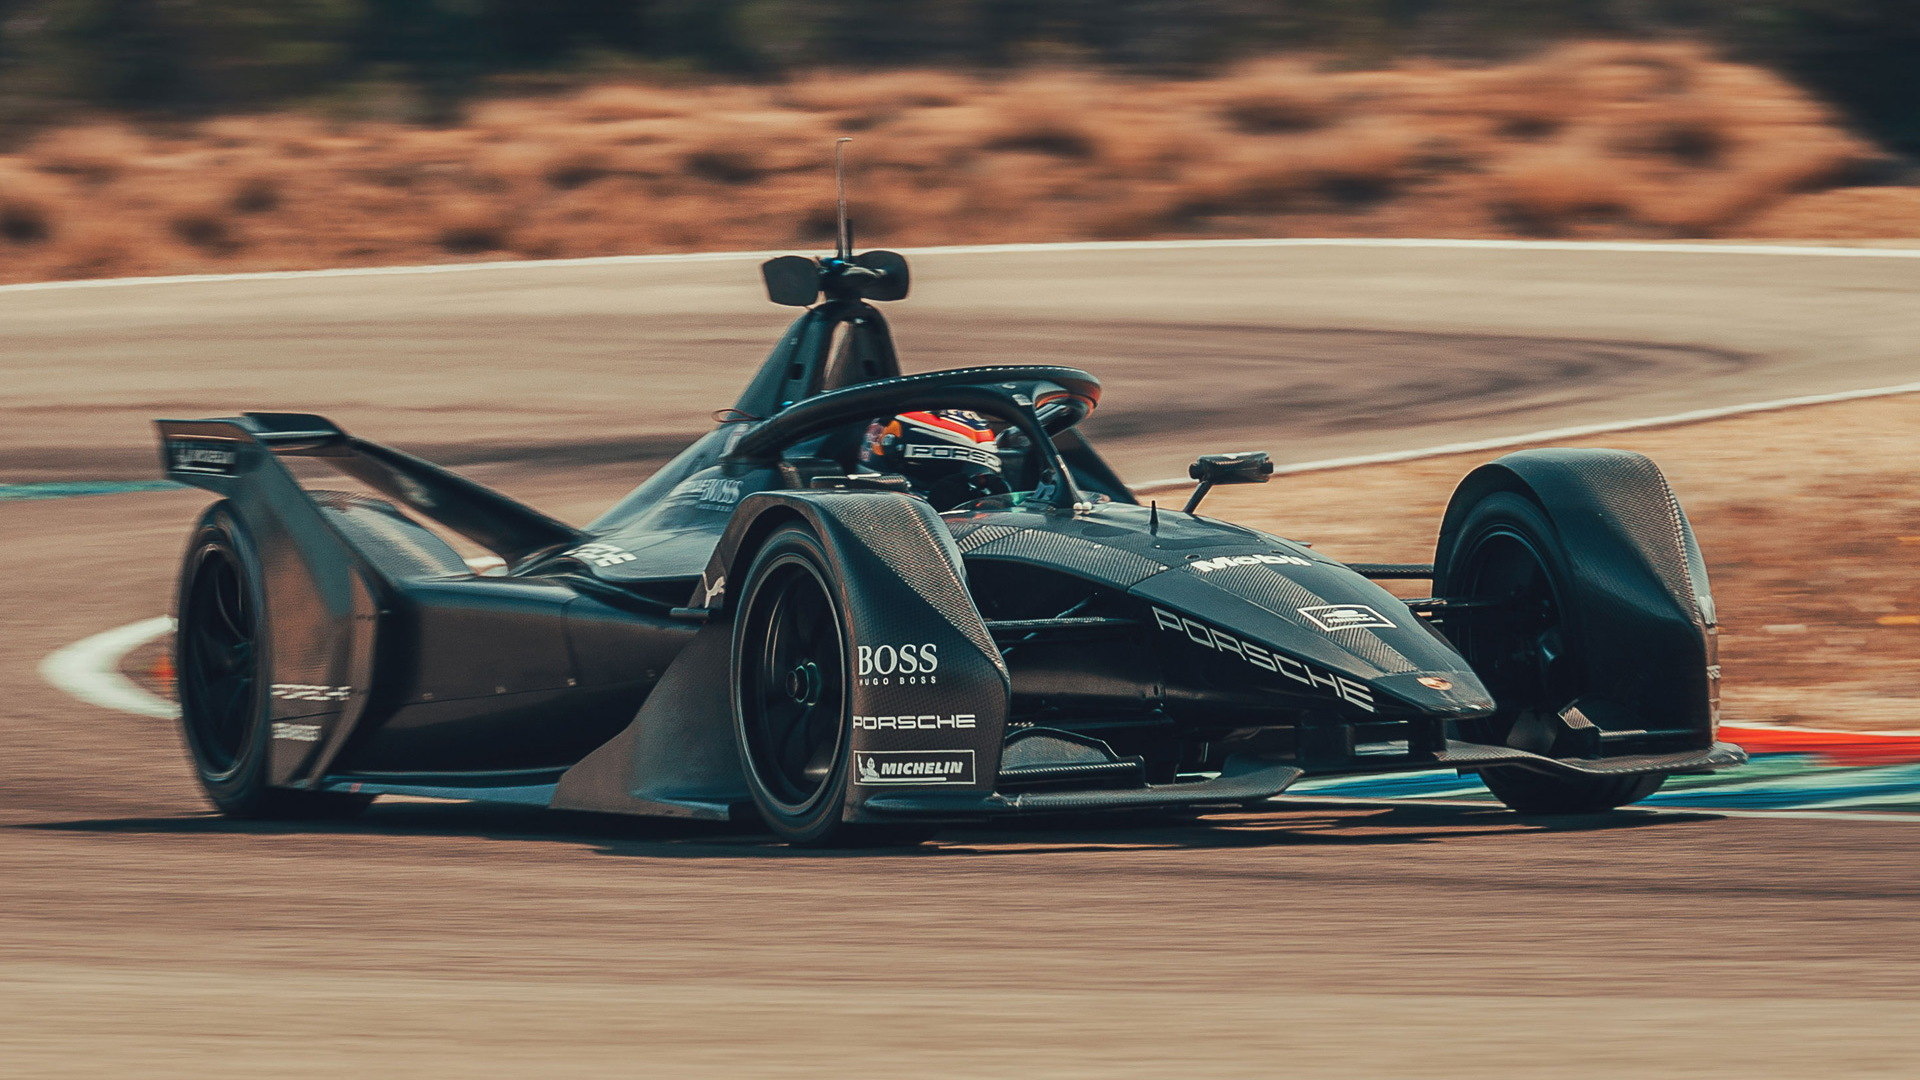 2019/2020 Porsche Formula E race car development